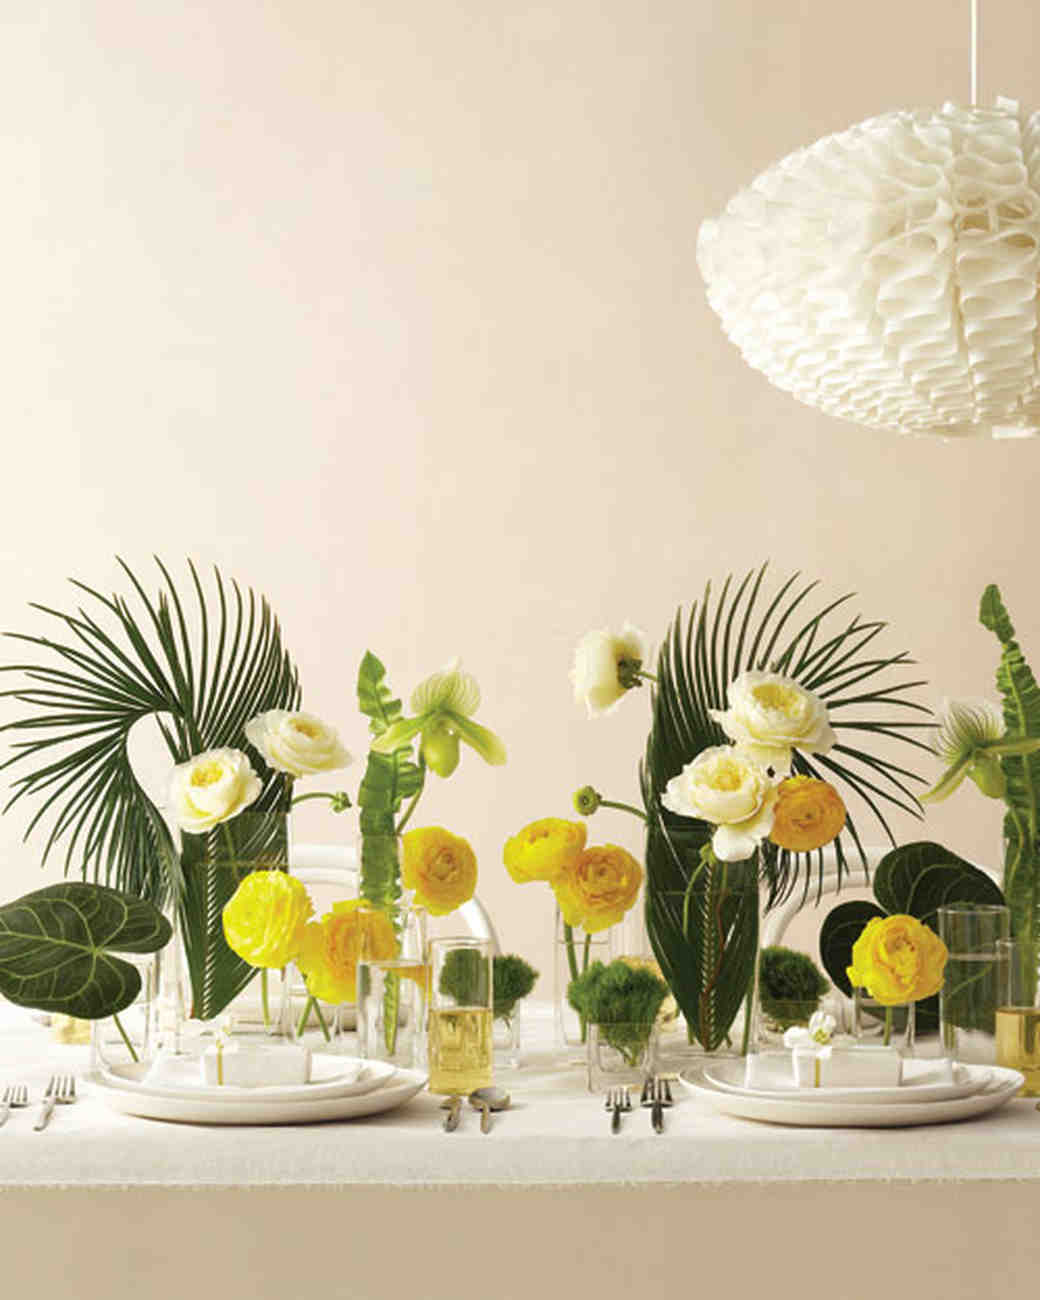 Beach Wedding Centerpieces Ideas: Beach Wedding Centerpieces